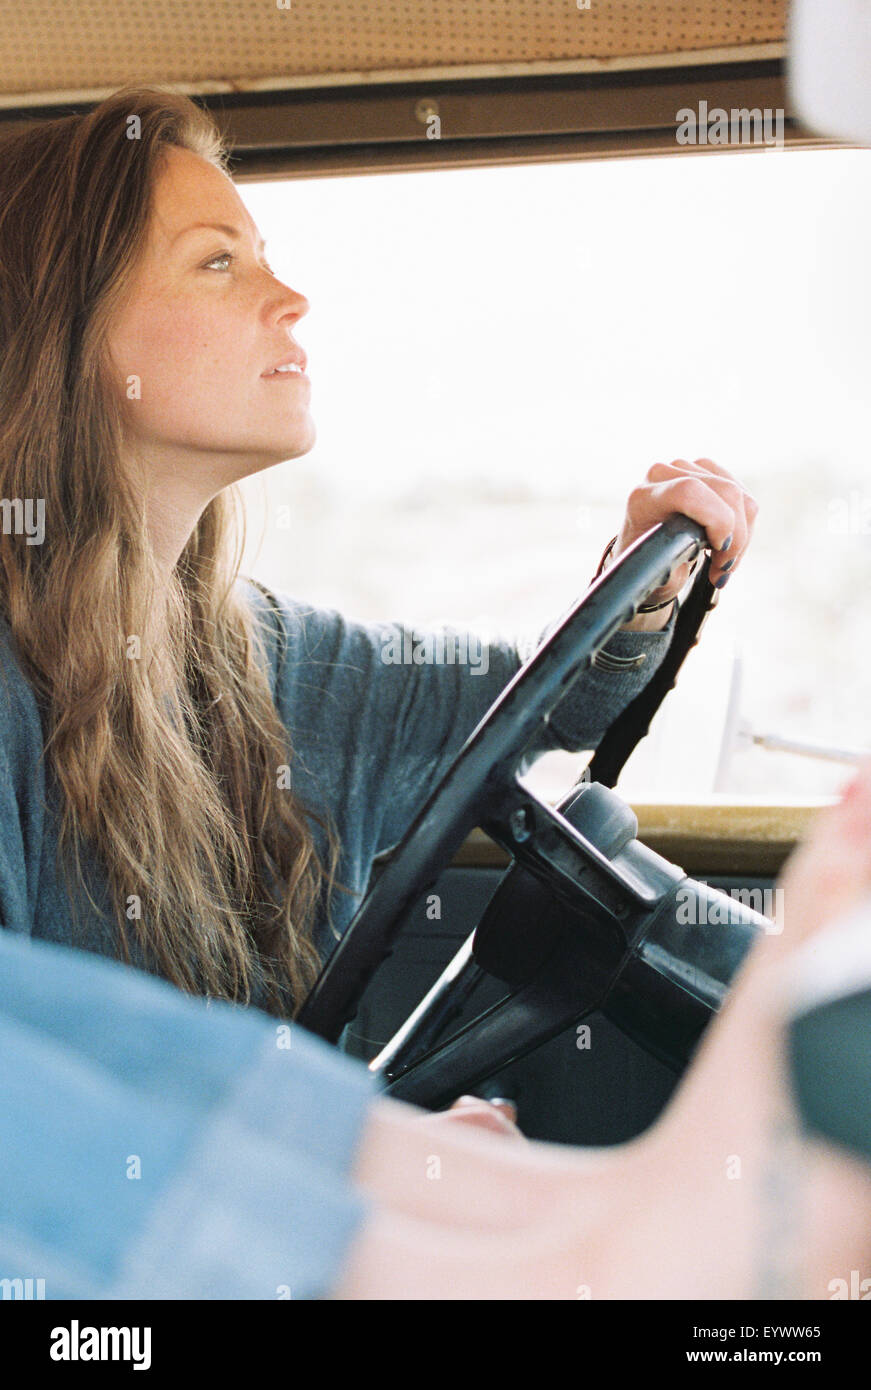 Barefoot woman resting her feet on the dashboard of a 4x4, a tattoo on her right foot, another woman driving. - Stock Image